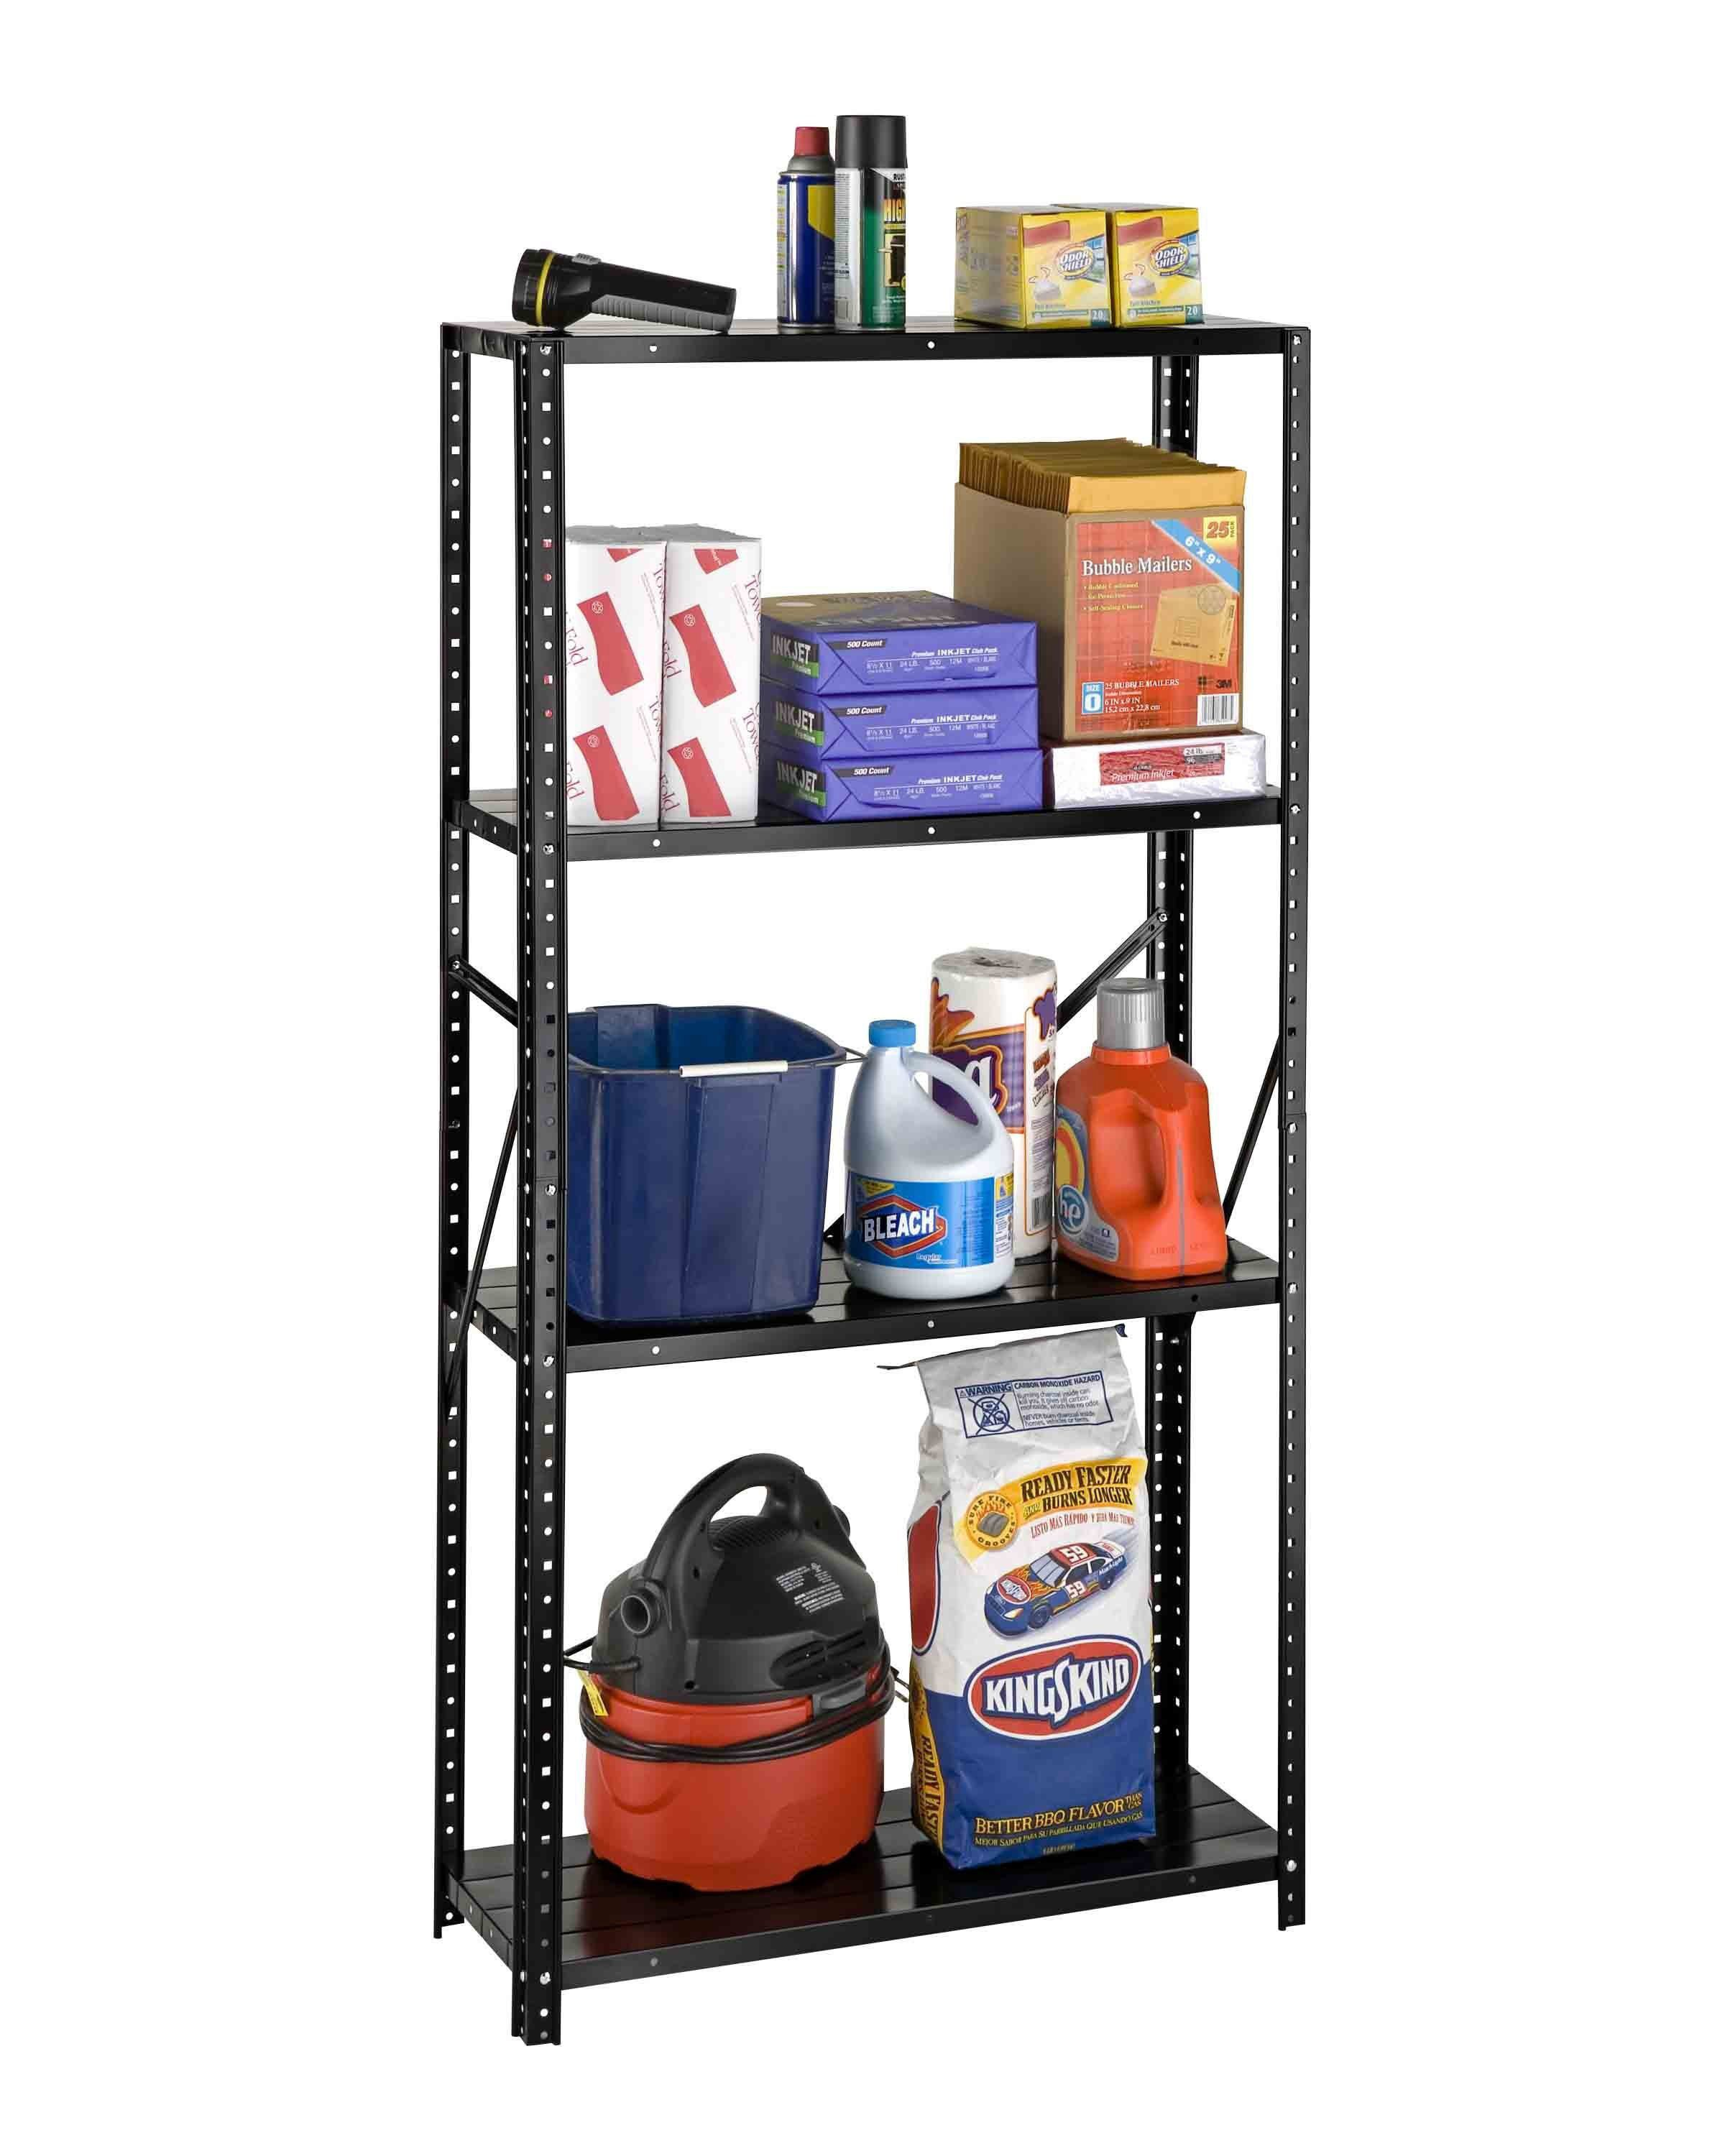 en storage ip canada steel shelf rack bolted walmart all